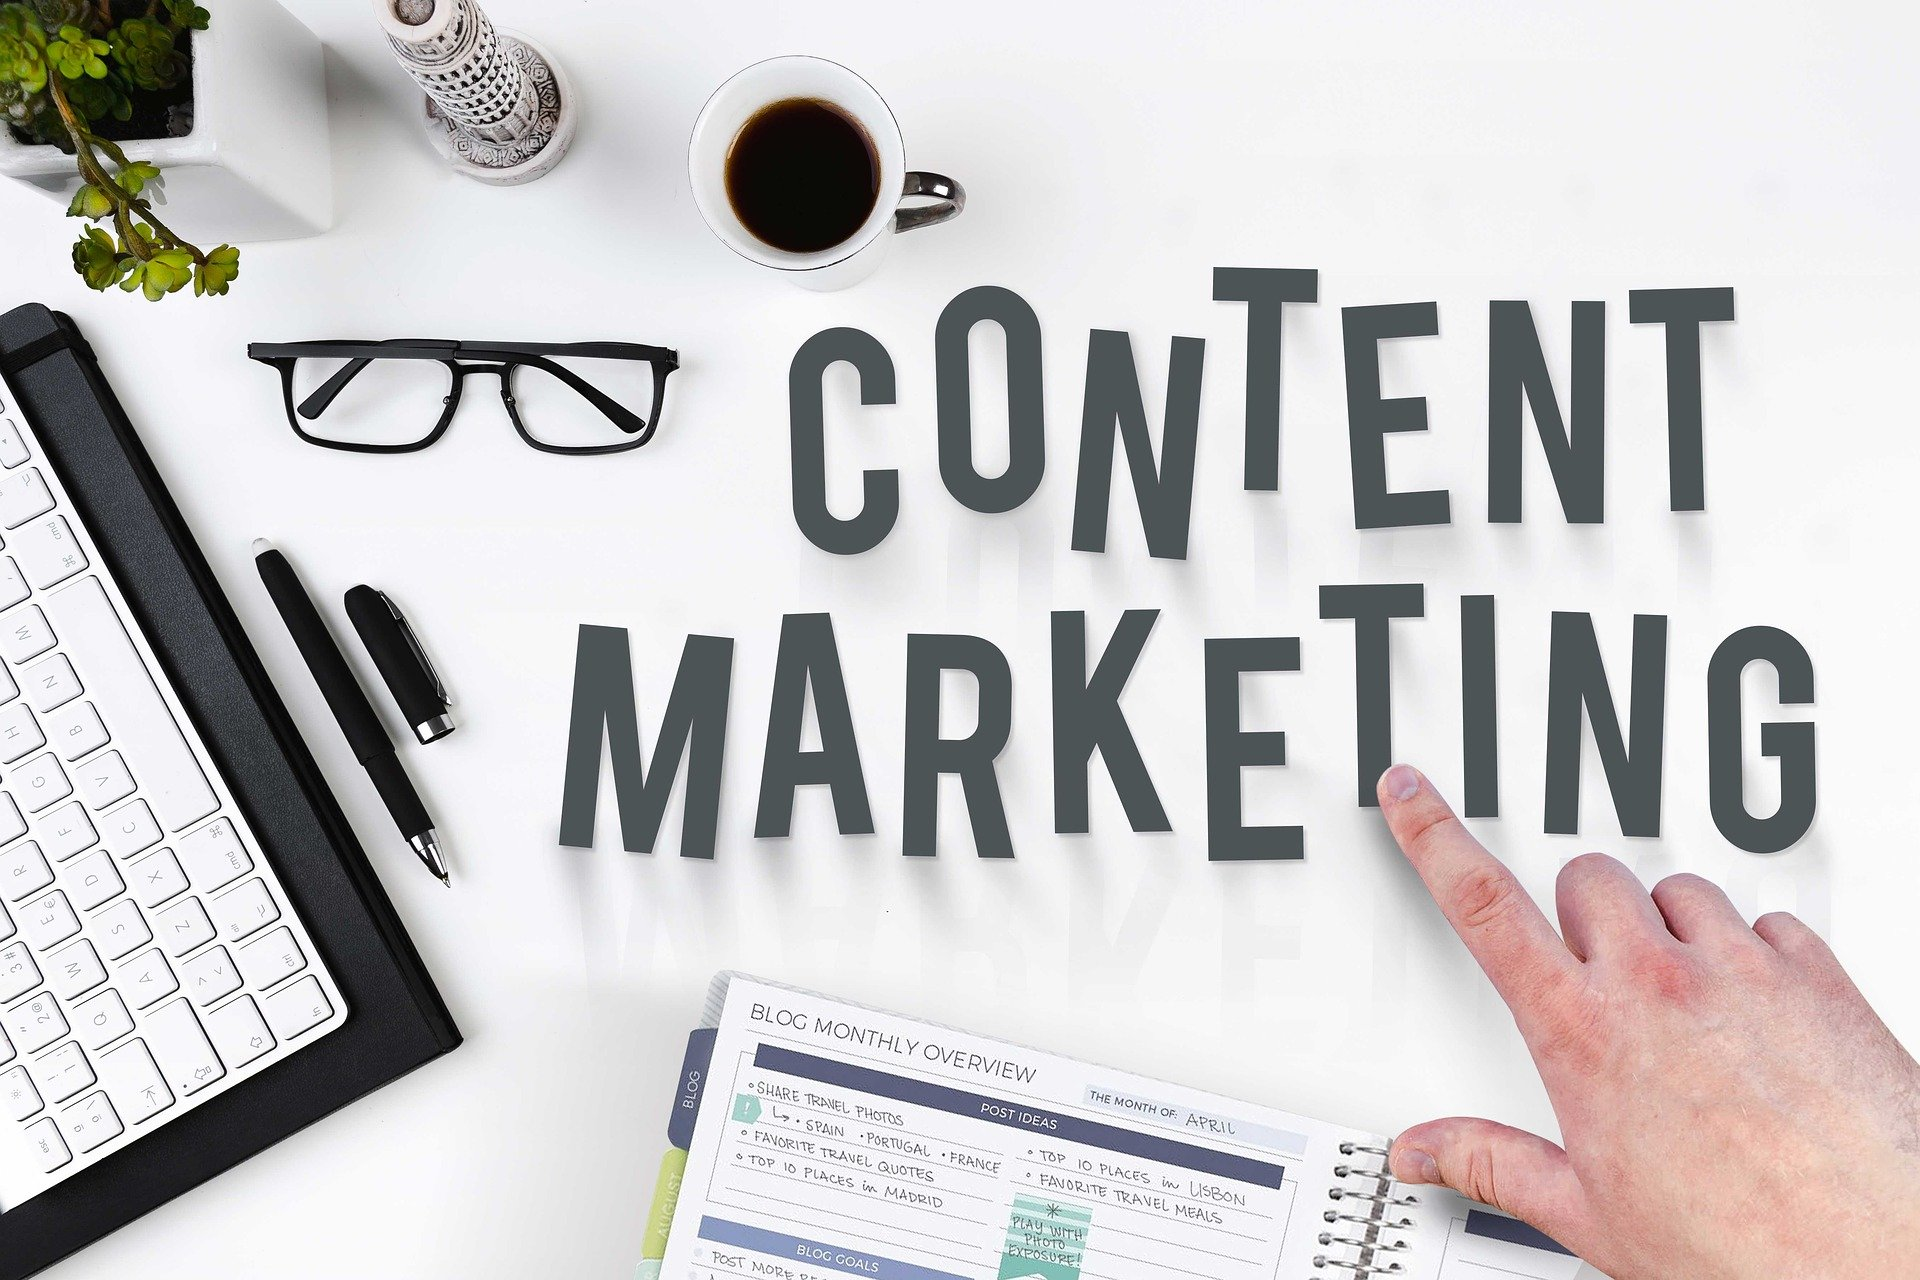 Content marketing to grow at CAGR of 13% till 2024